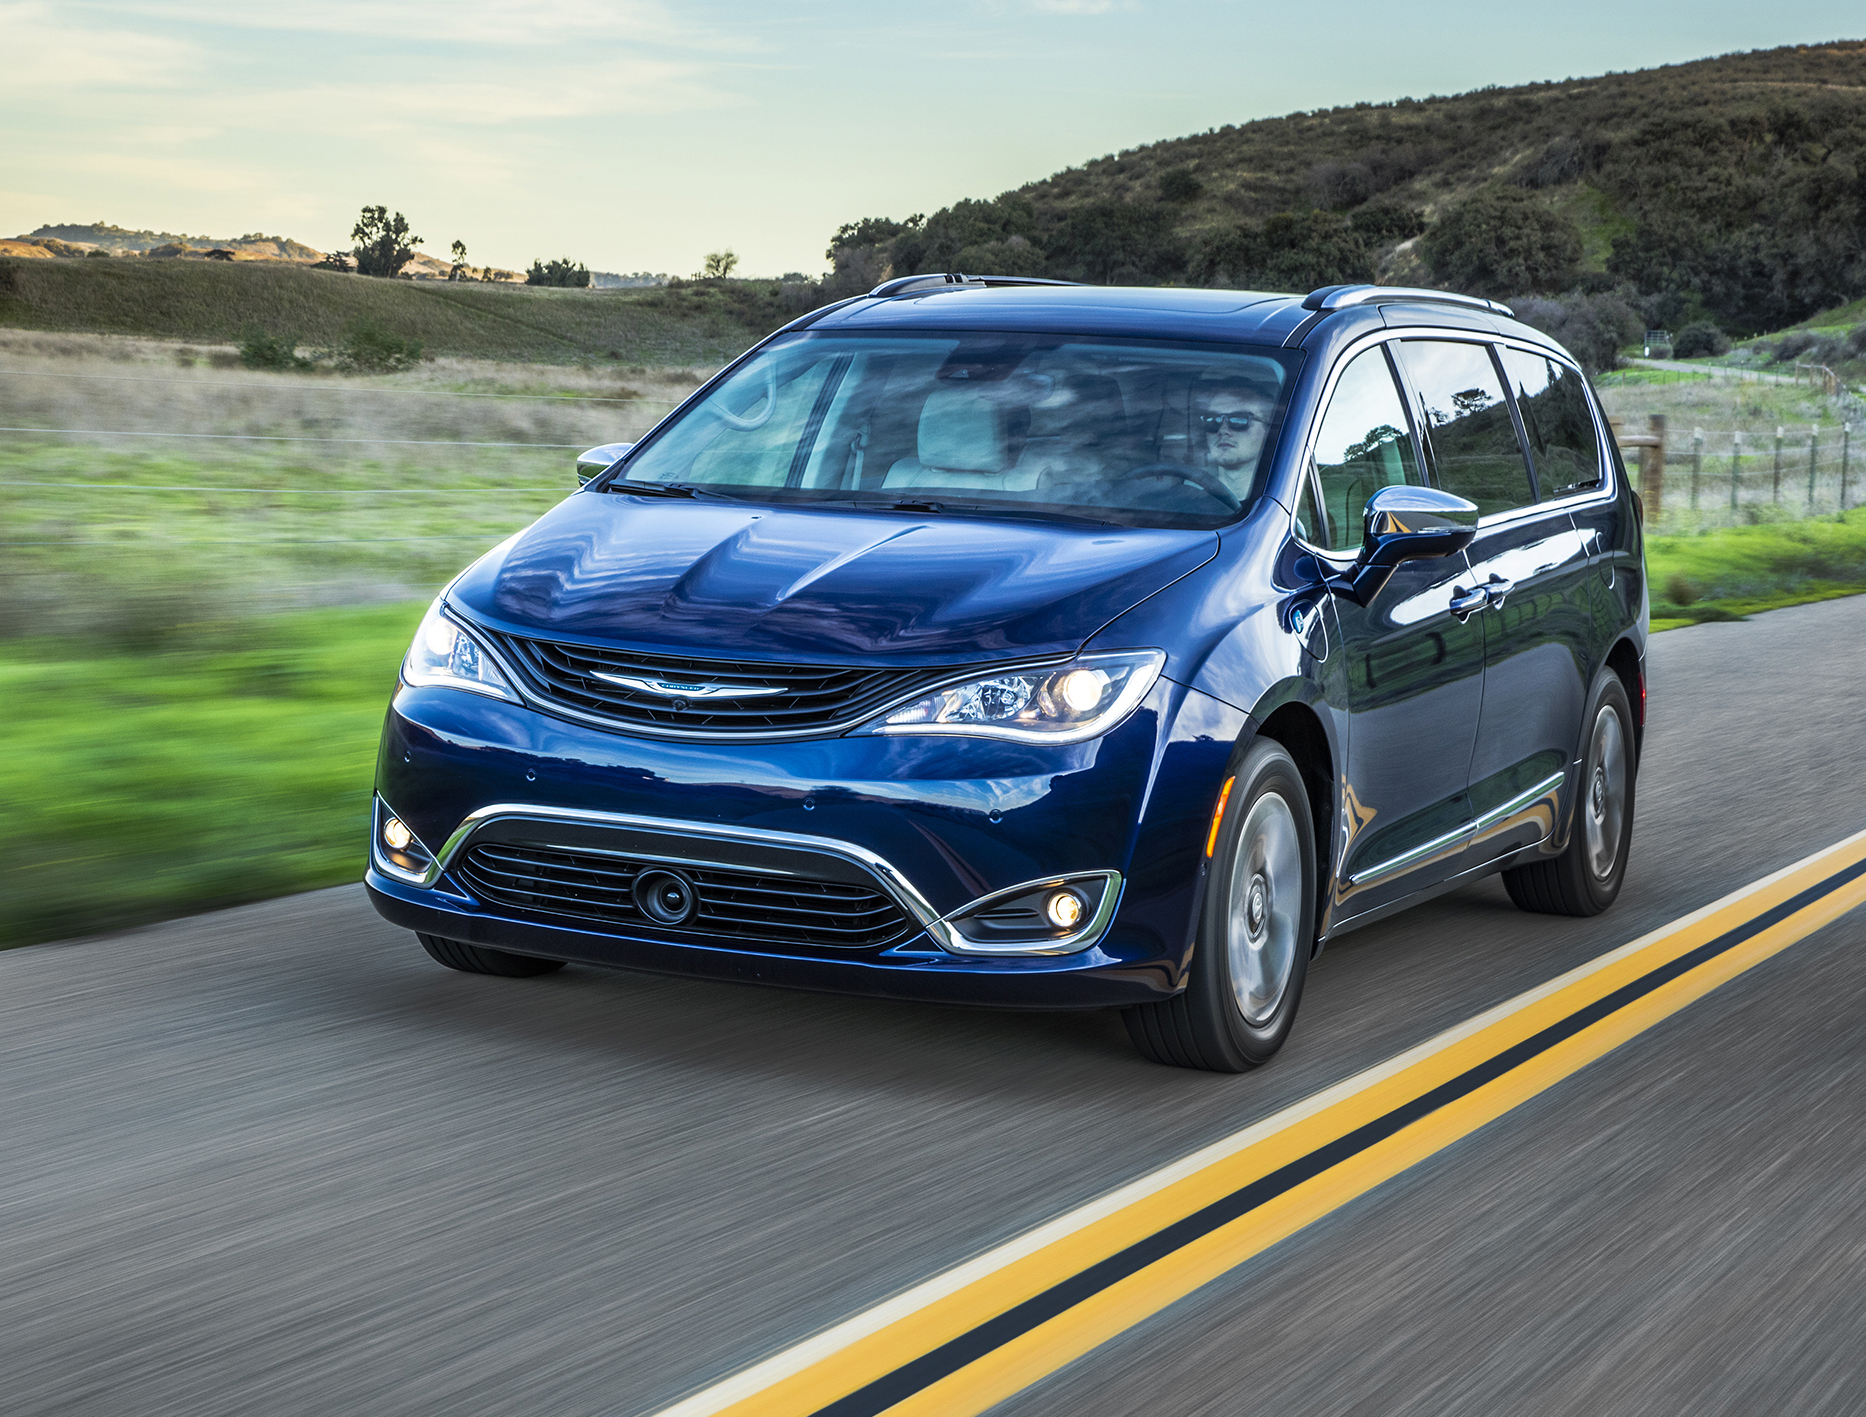 Chrysler's hybrid minivan can go 33 miles without gas